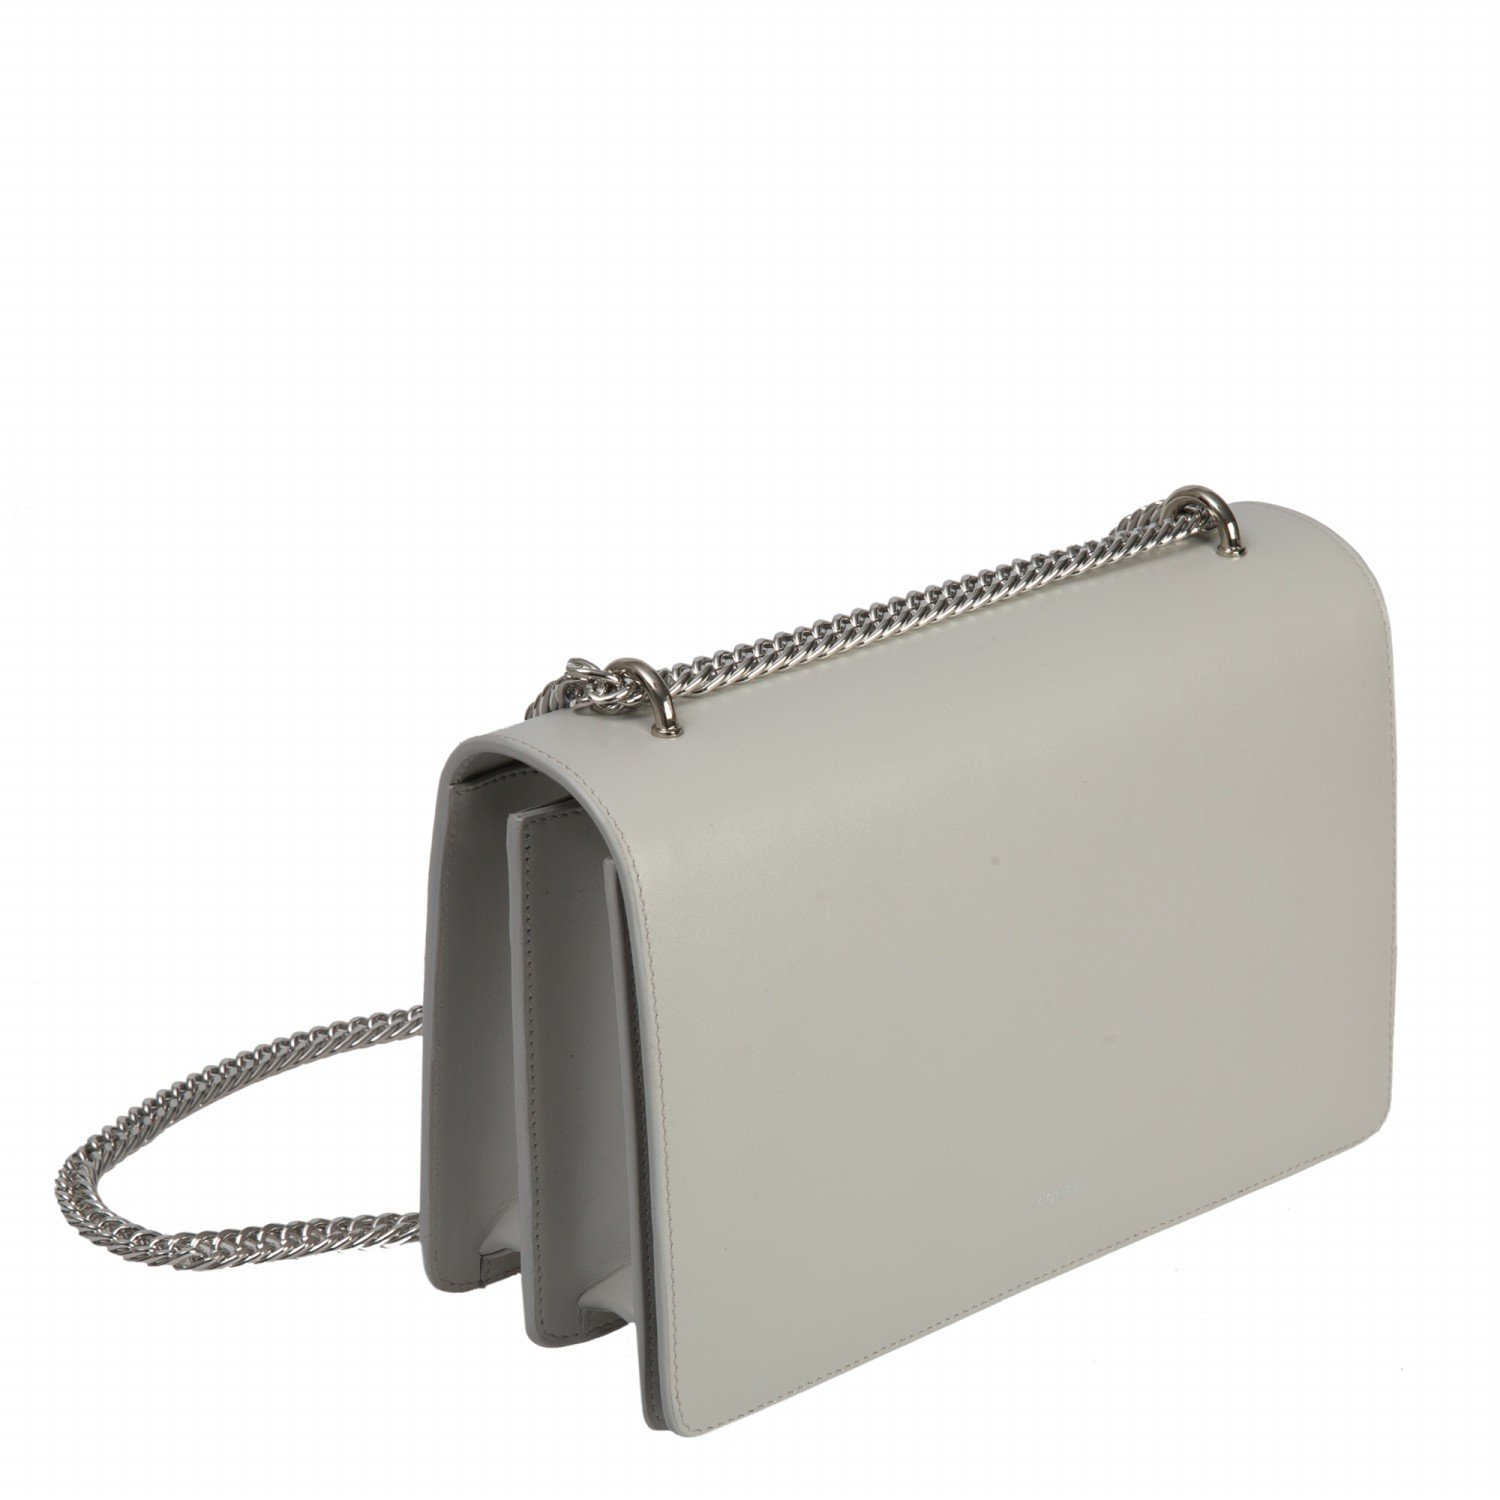 SOPHIE SHOULDER BAG IN CALFSKIN